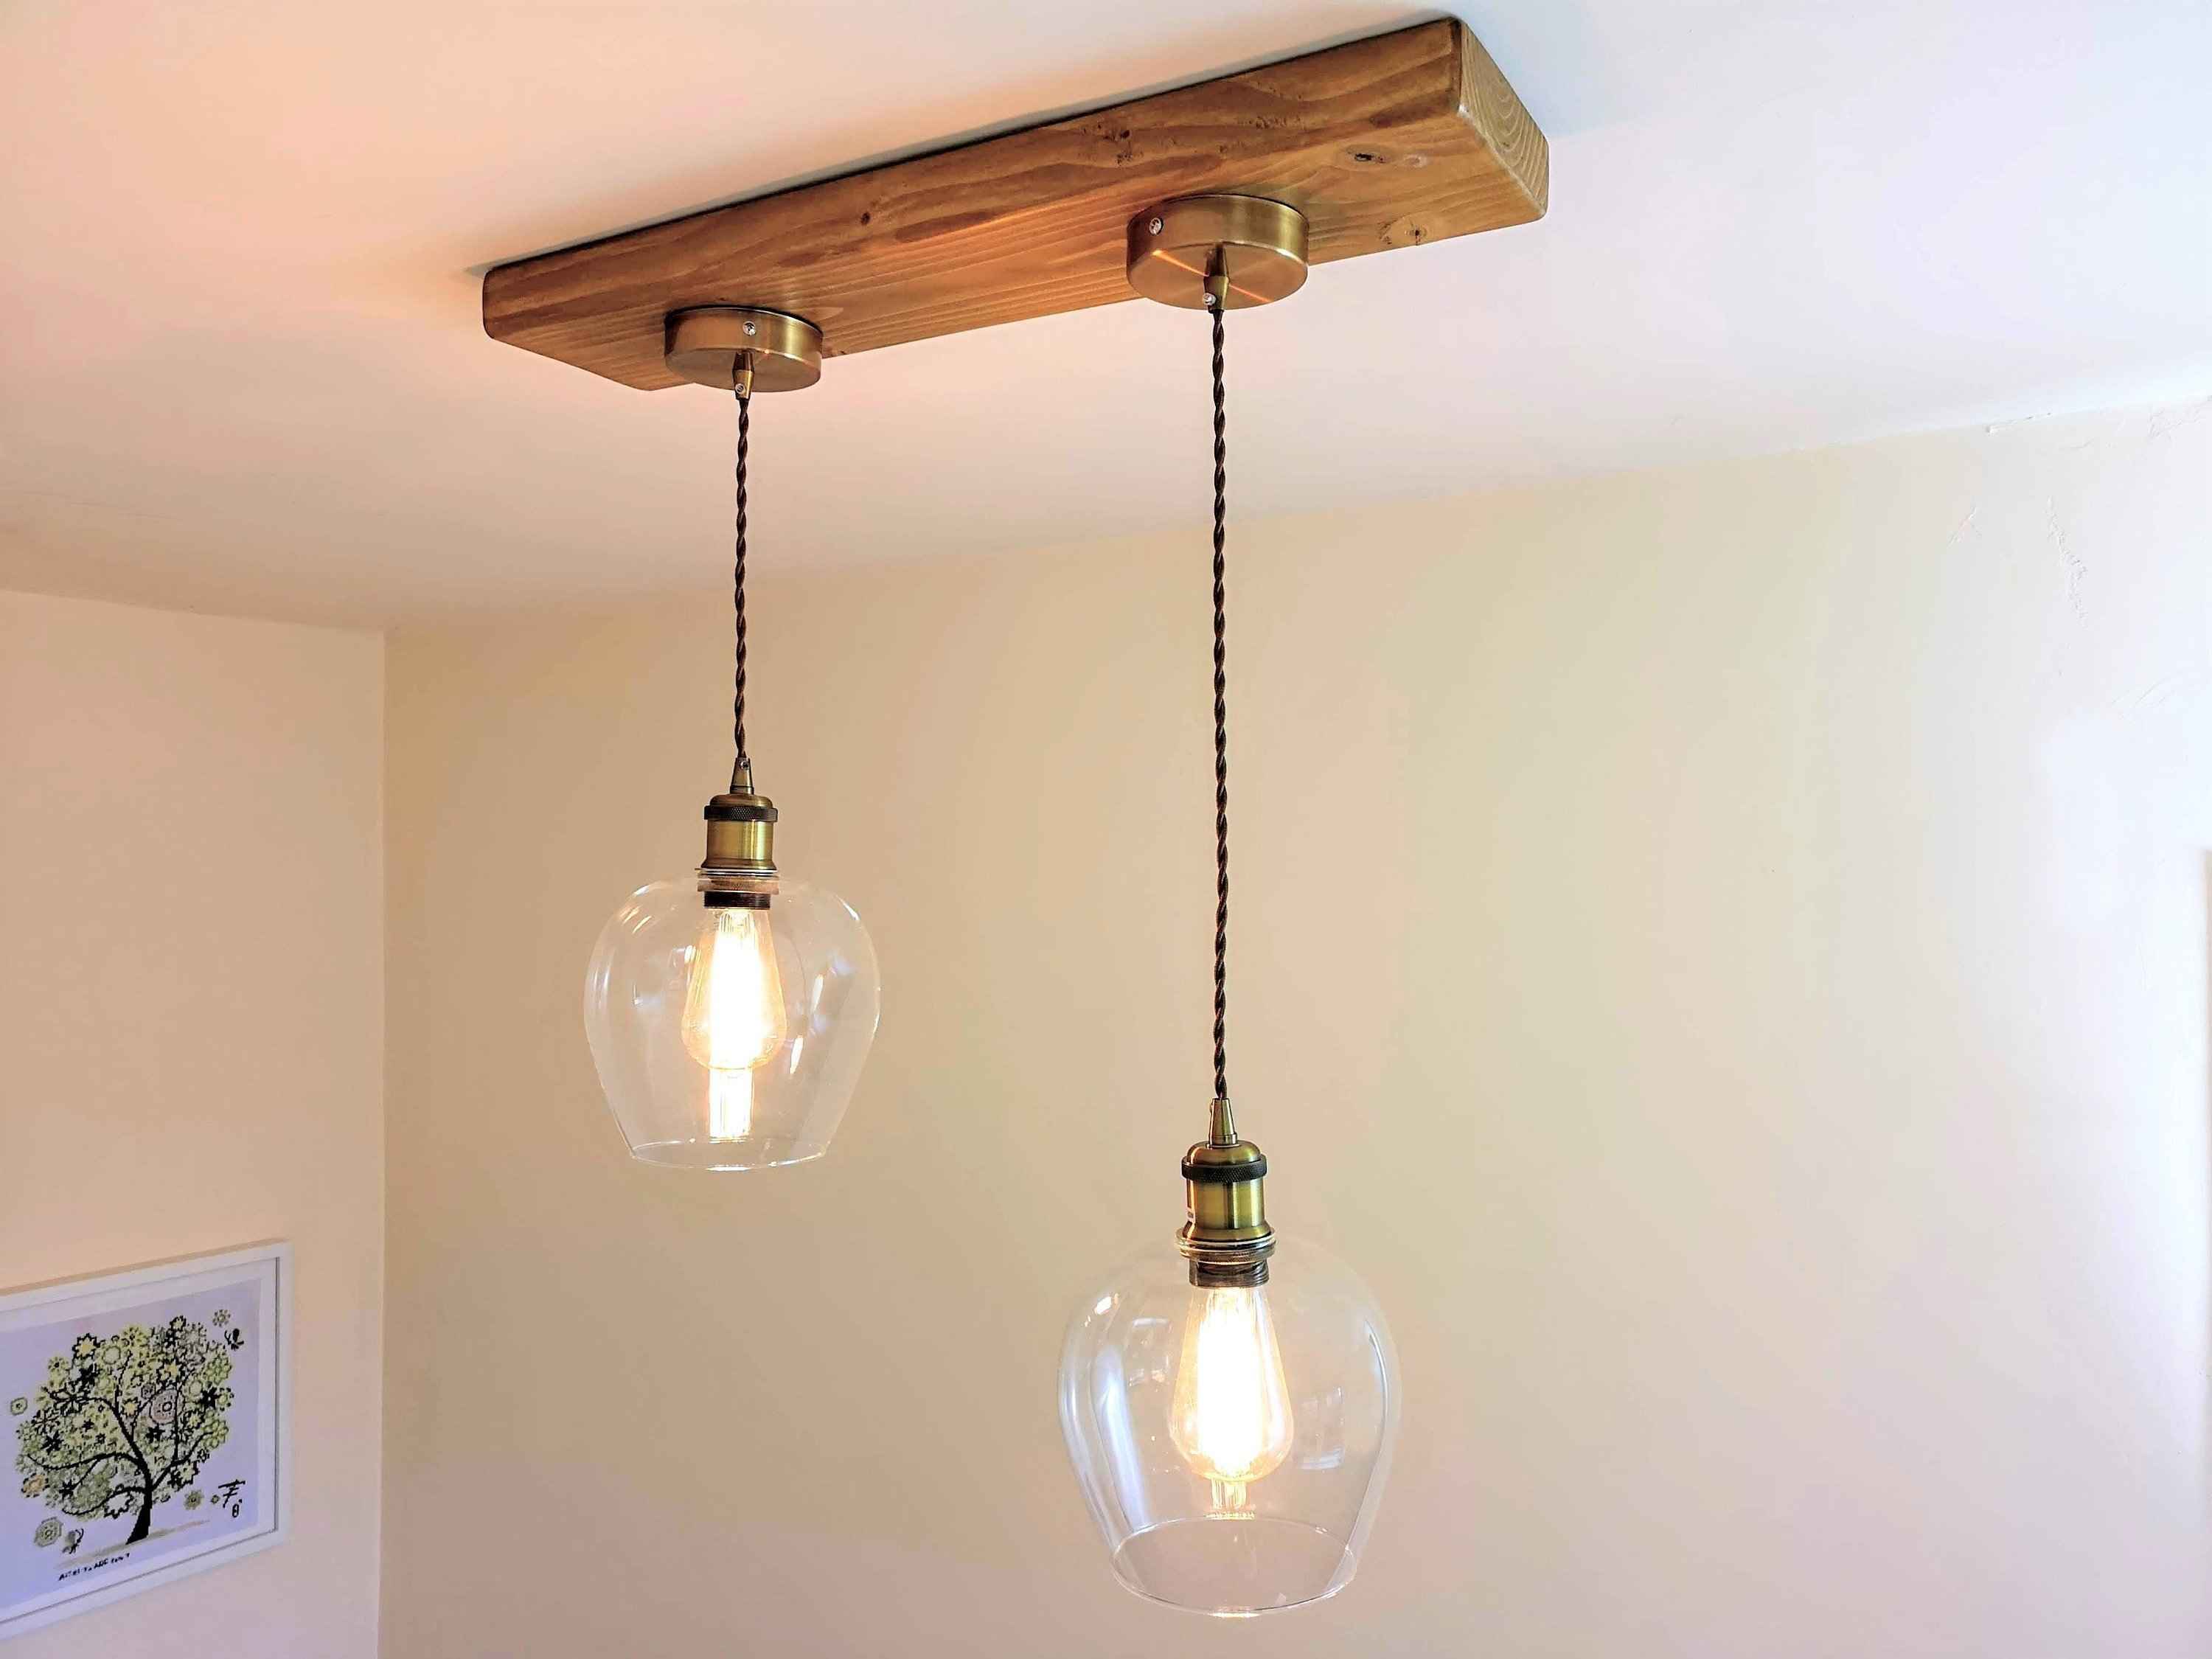 Industrial ceiling light designer brass lamp holders with glass bell shaped shades on a timber base modern pendant light fitting